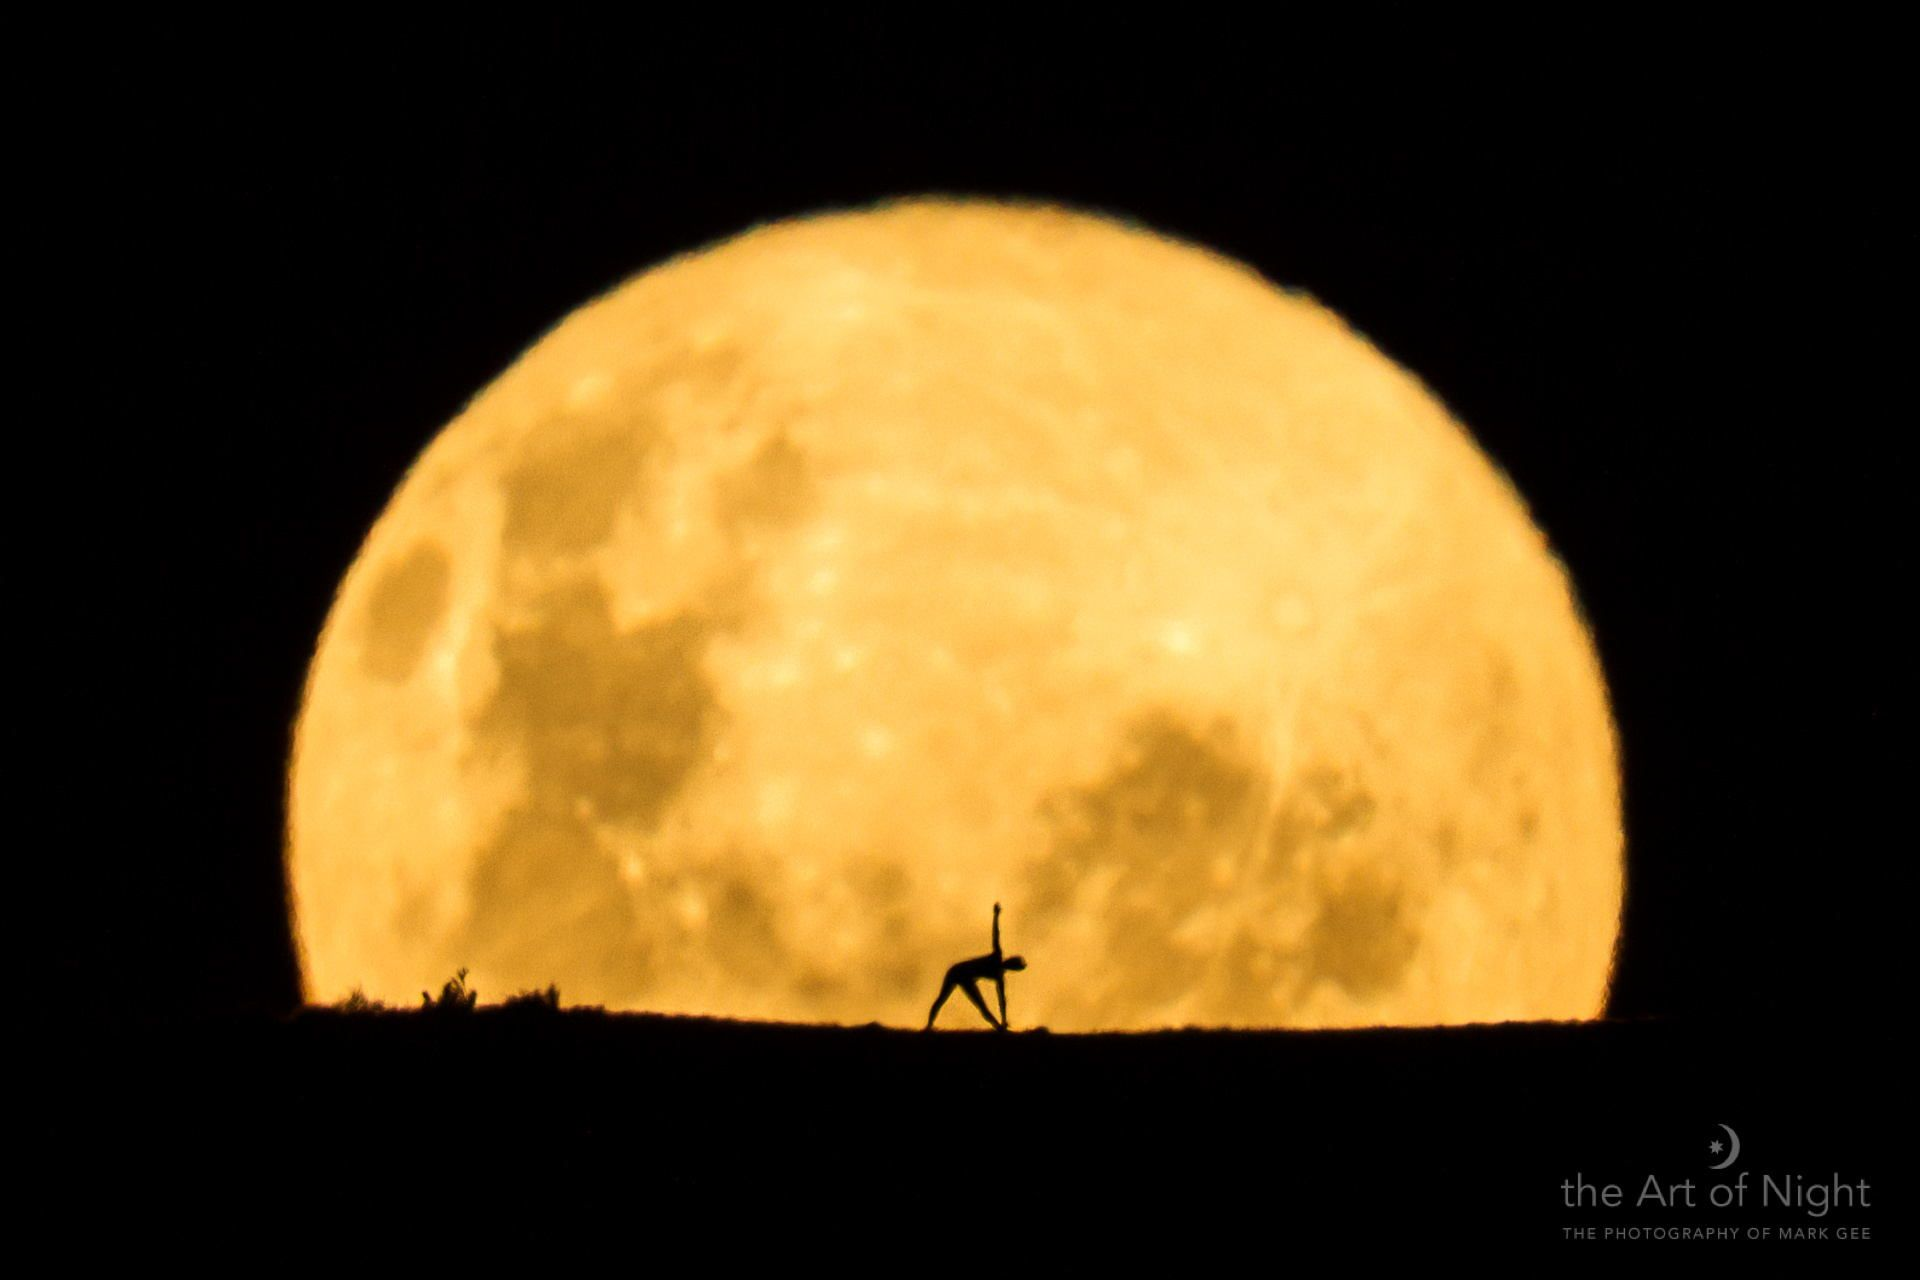 Yoga By The Honey Moon by Mark Gee on 500px | www.theartofnight.com | www.facebook.com/markgphoto